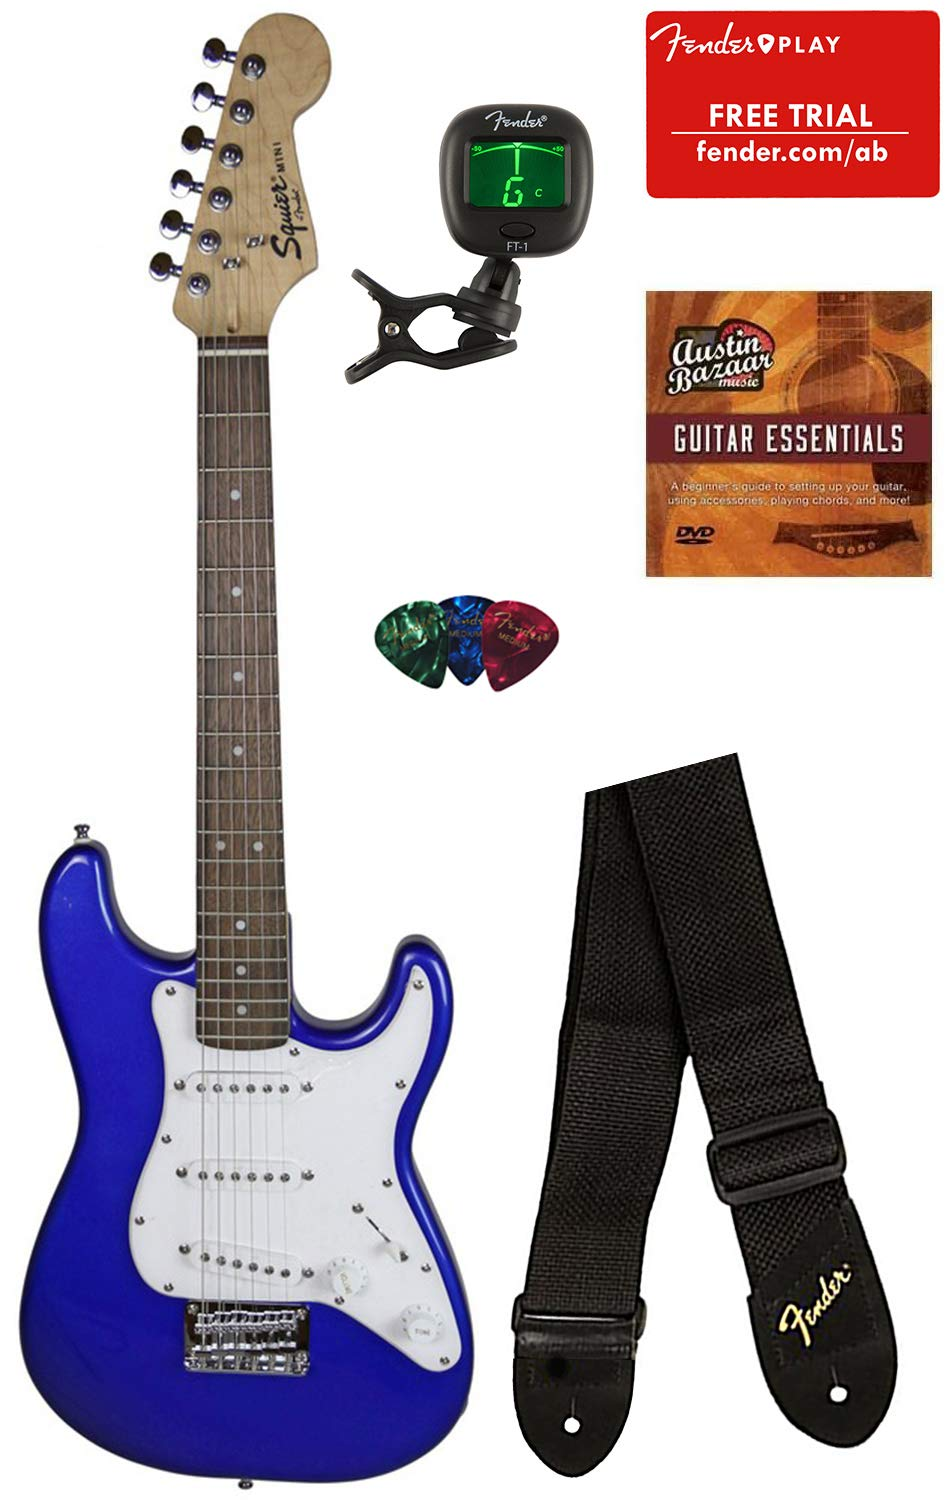 Squier by Fender Mini Strat Electric Guitar - Imperial Blue Bundle with Tuner, Strap, Picks, Fender Play Online Lessons, Austin Bazaar Instructional DVD, and Polishing Cloth by Squier